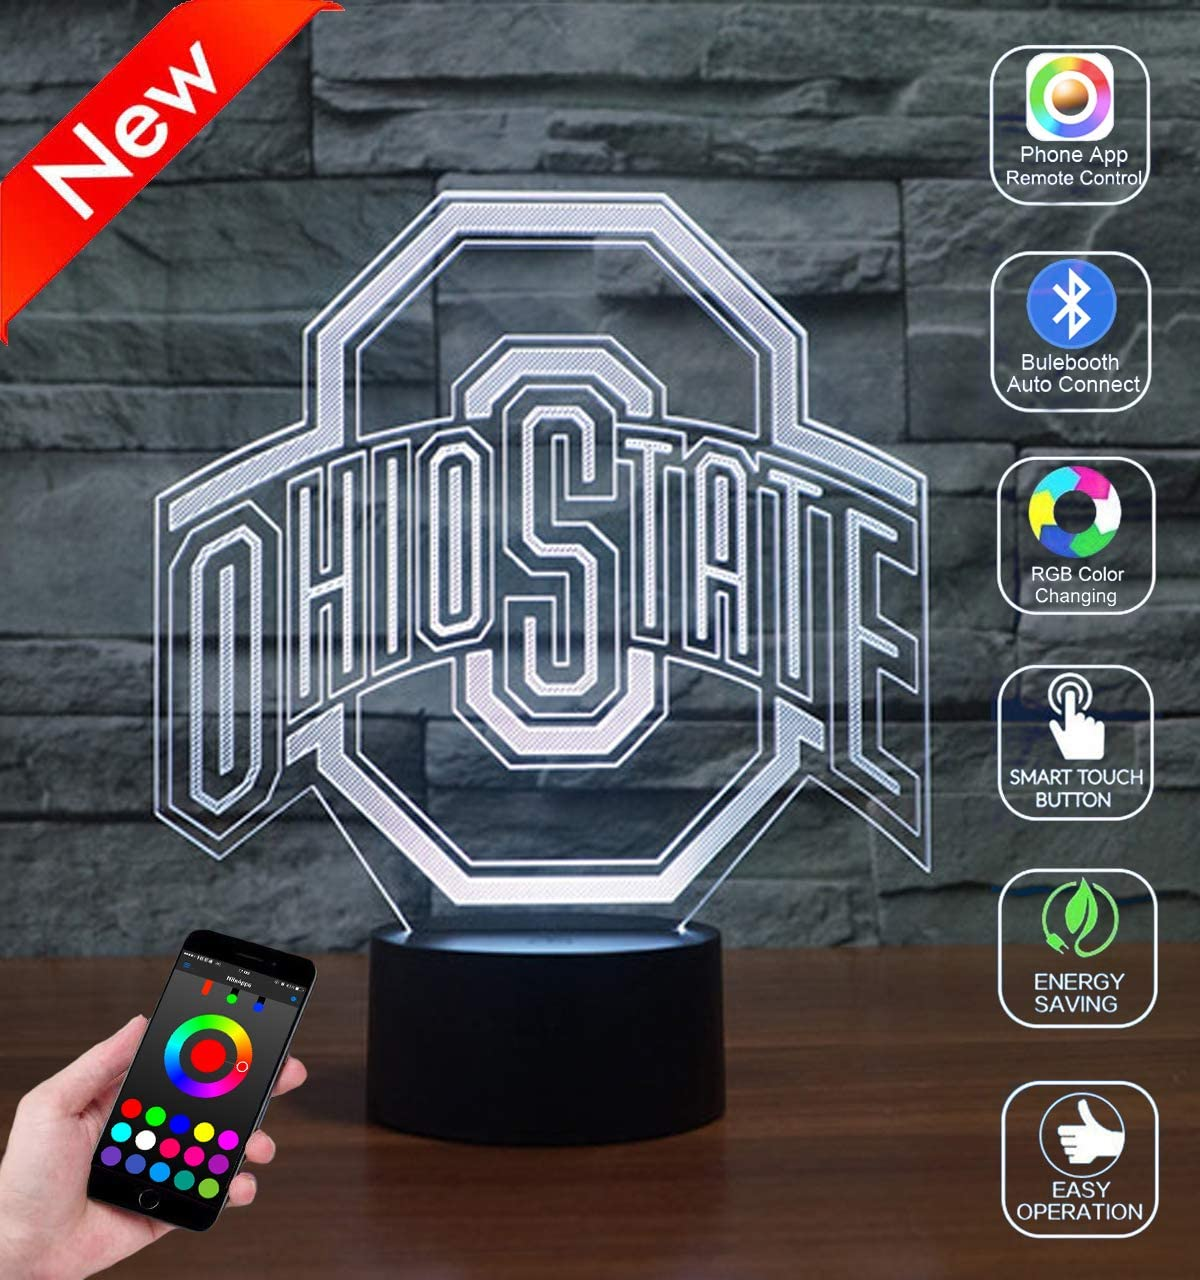 Lakobsy NCAA Ohio State University Team Logo 3D Optical Illusion Lamp Phone APP Bluetooth Remote Control Smart Night Light Decor Bedside Toy Lamp for Kids Gift